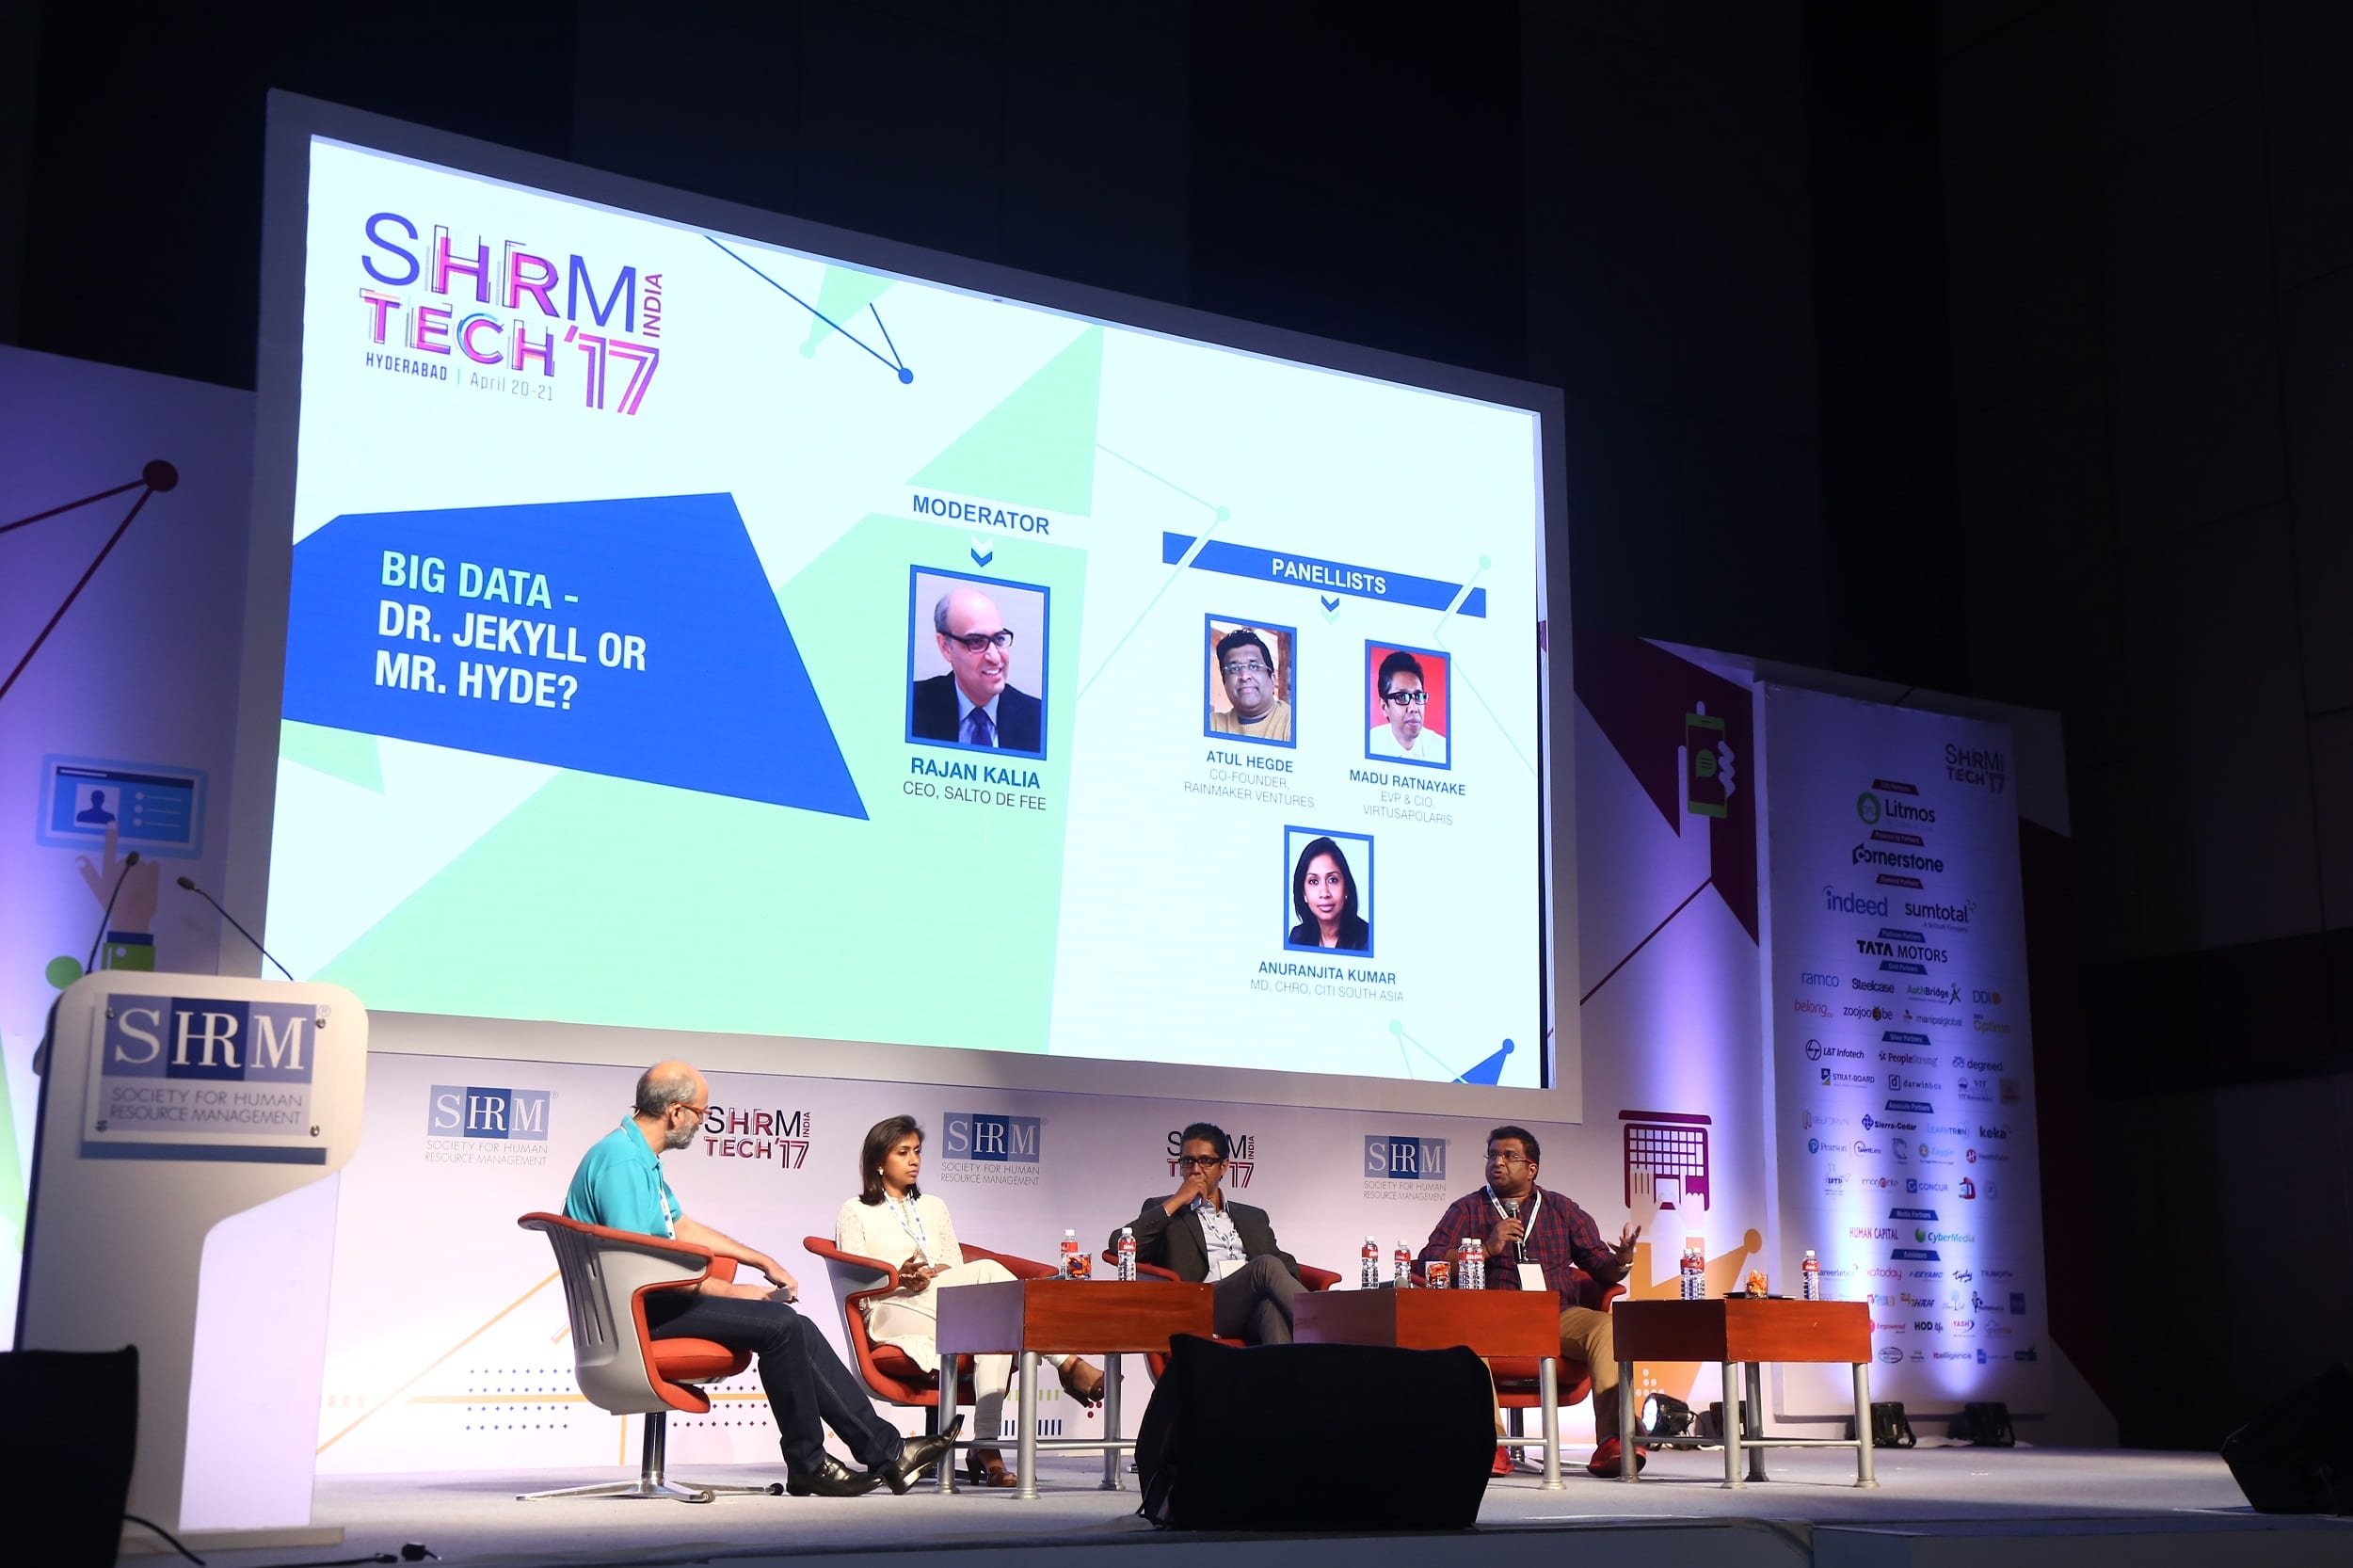 SHRM India presents '3rd HR TechConference 2017' successfully